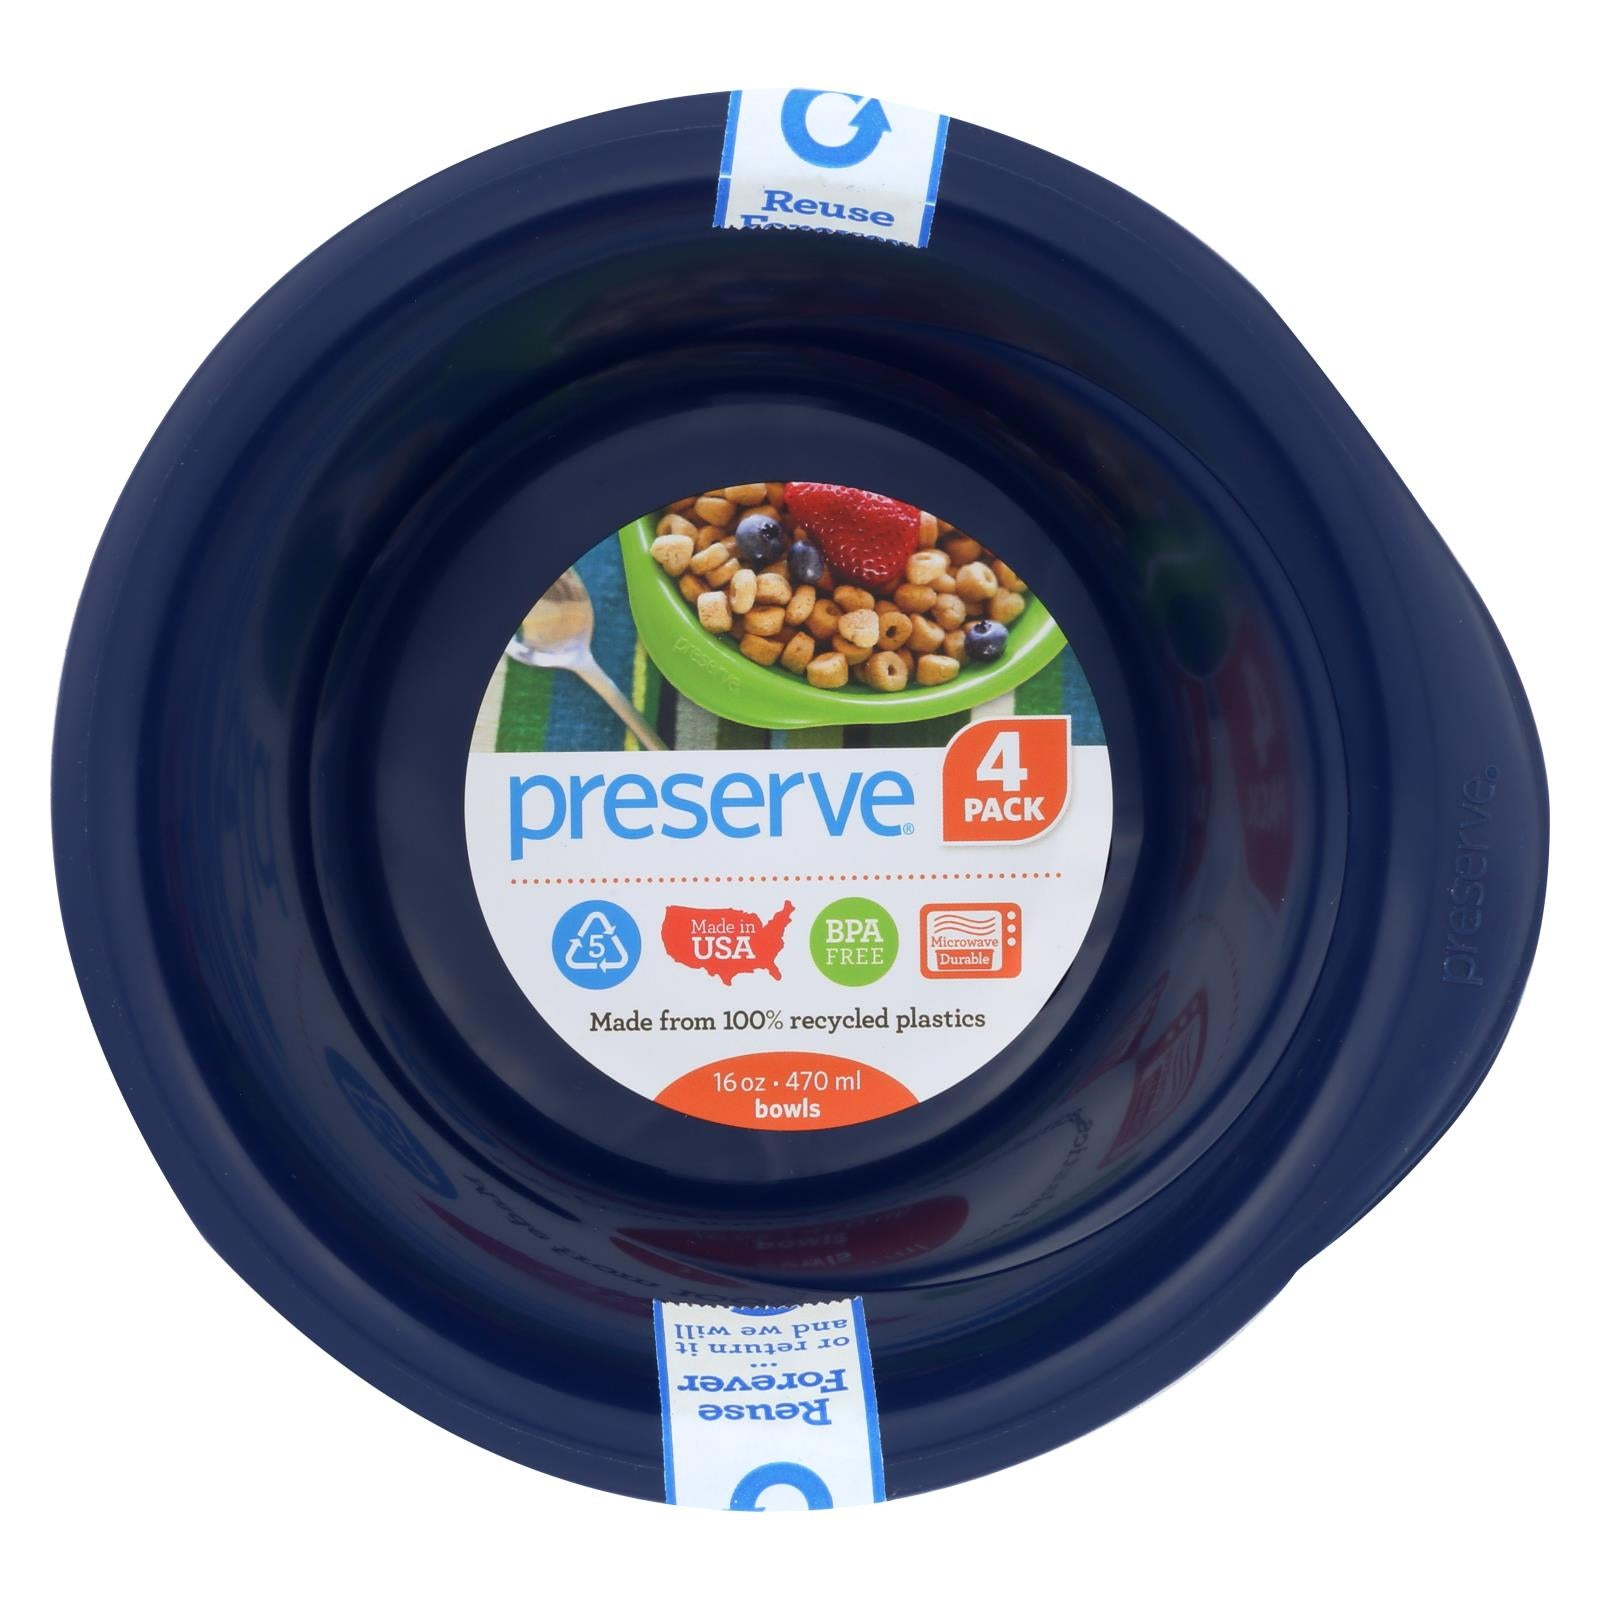 Buy Preserve Everyday Bowls - Midnight Blue - 4 Pack - 16 oz - Tableware from Veroeco.com